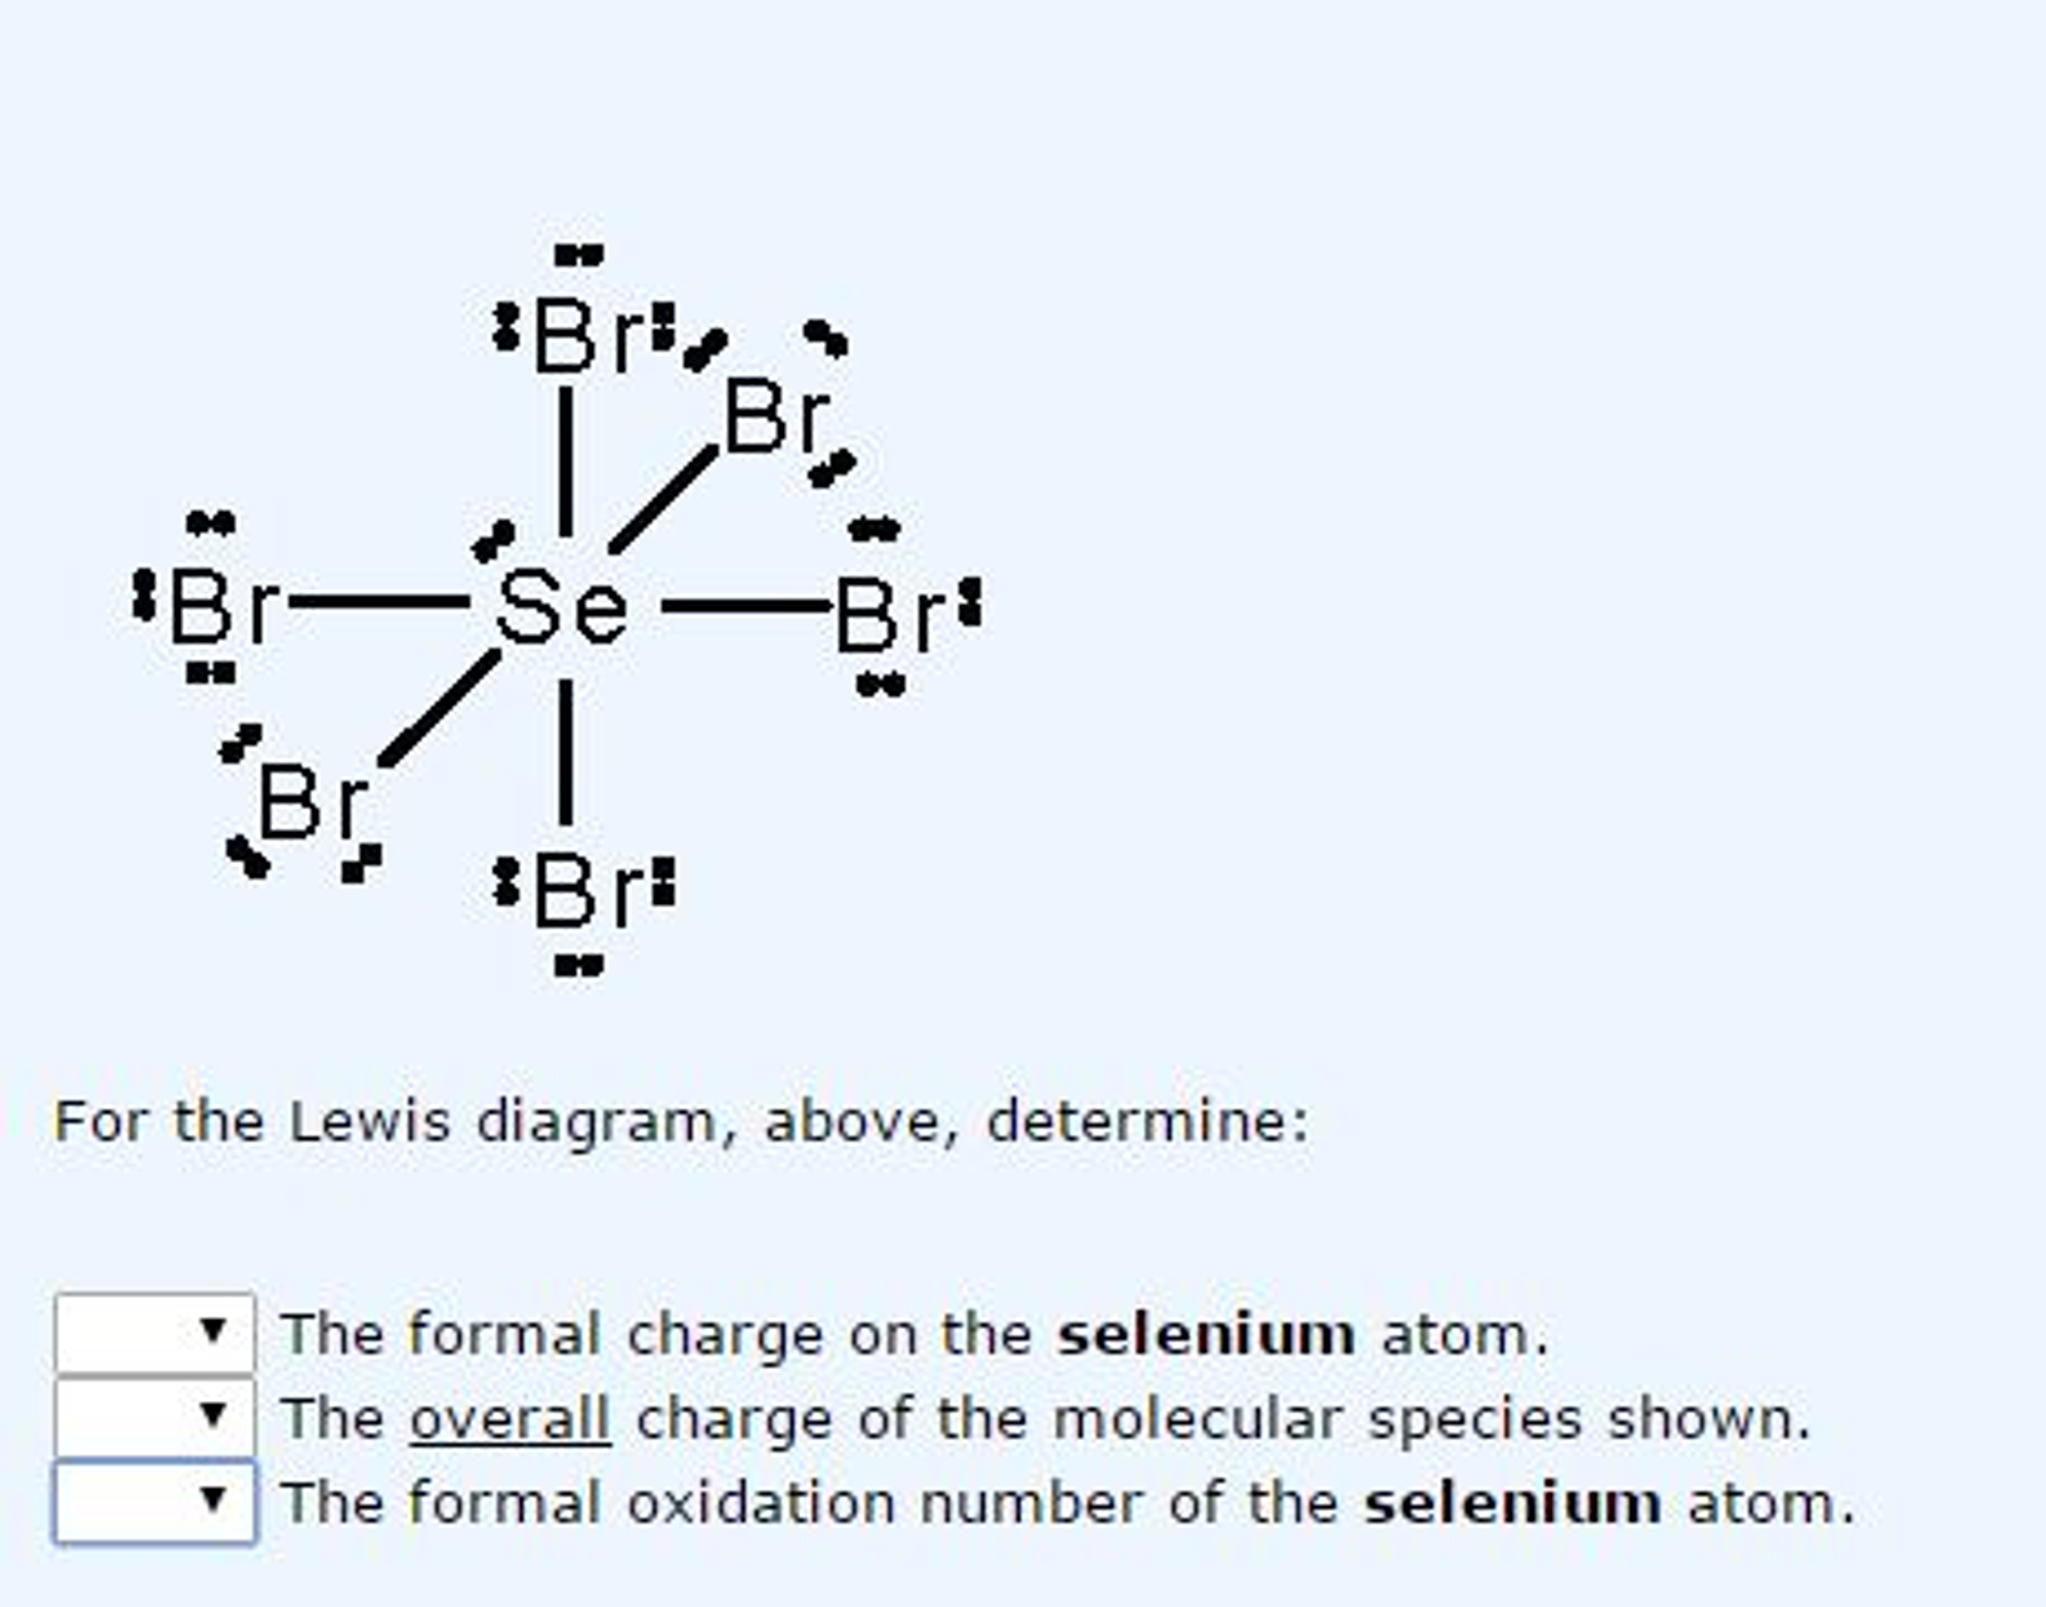 Chemistry archive november 12 2016 chegg for the lewis diagram above determine the form pooptronica